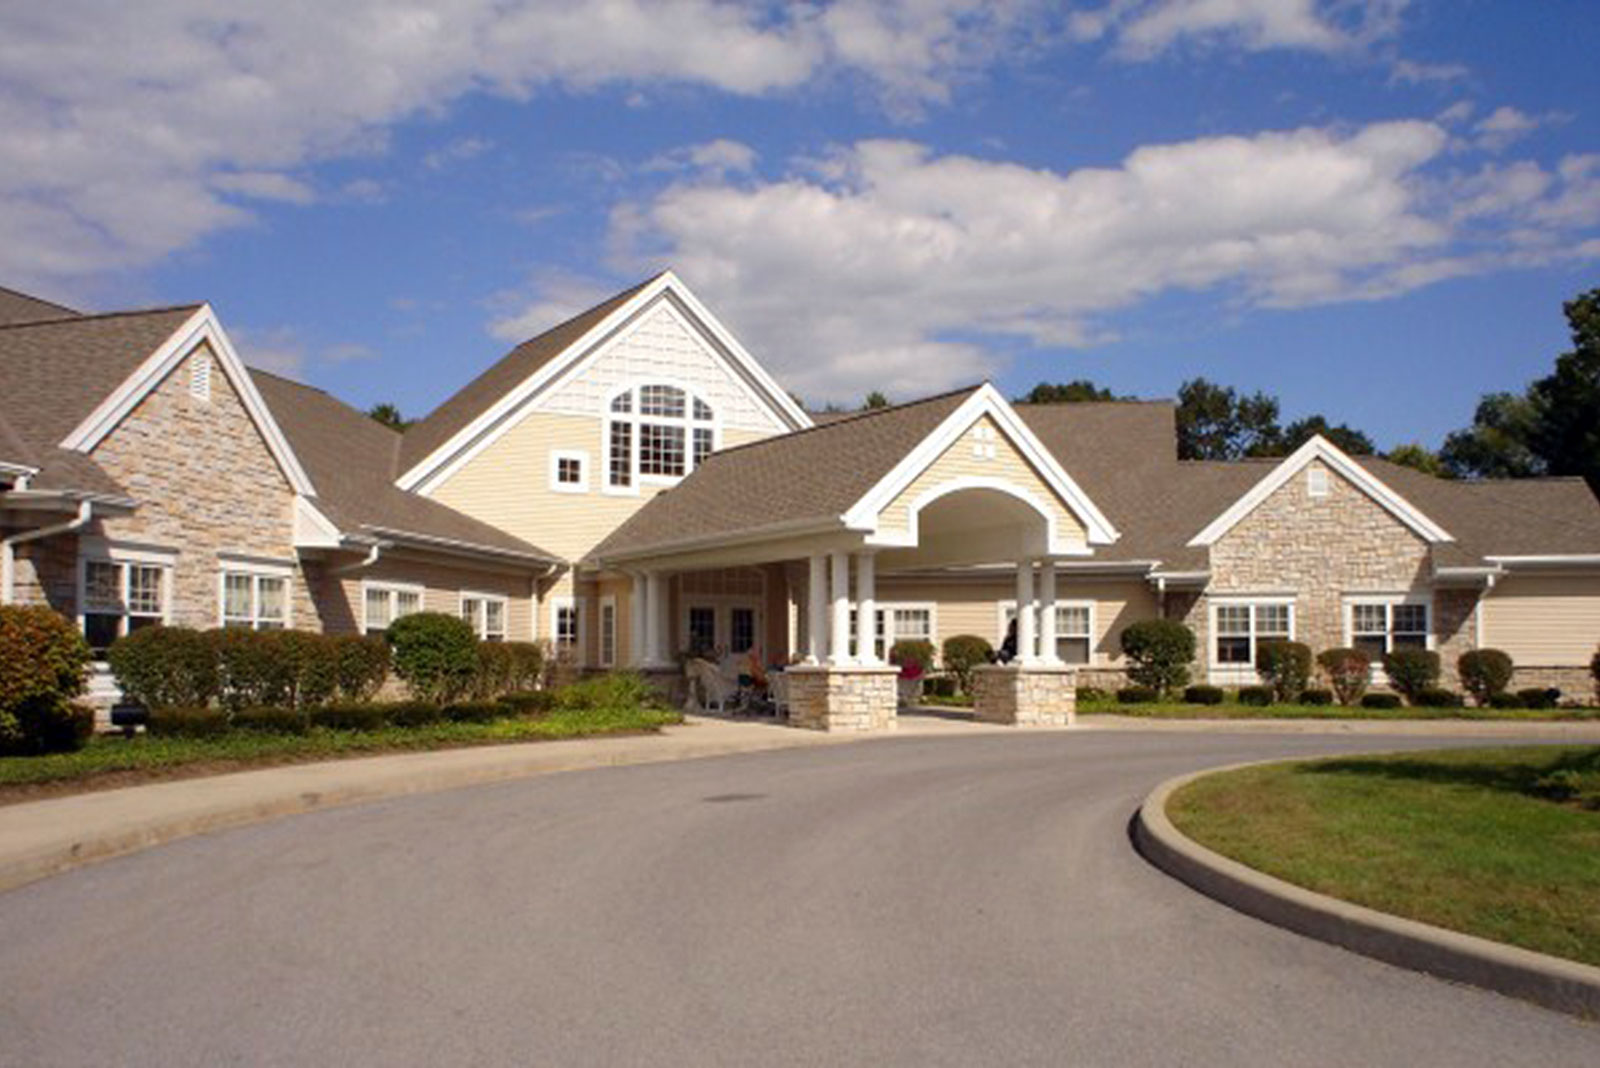 Peregrine Senior Living at Clifton Park background